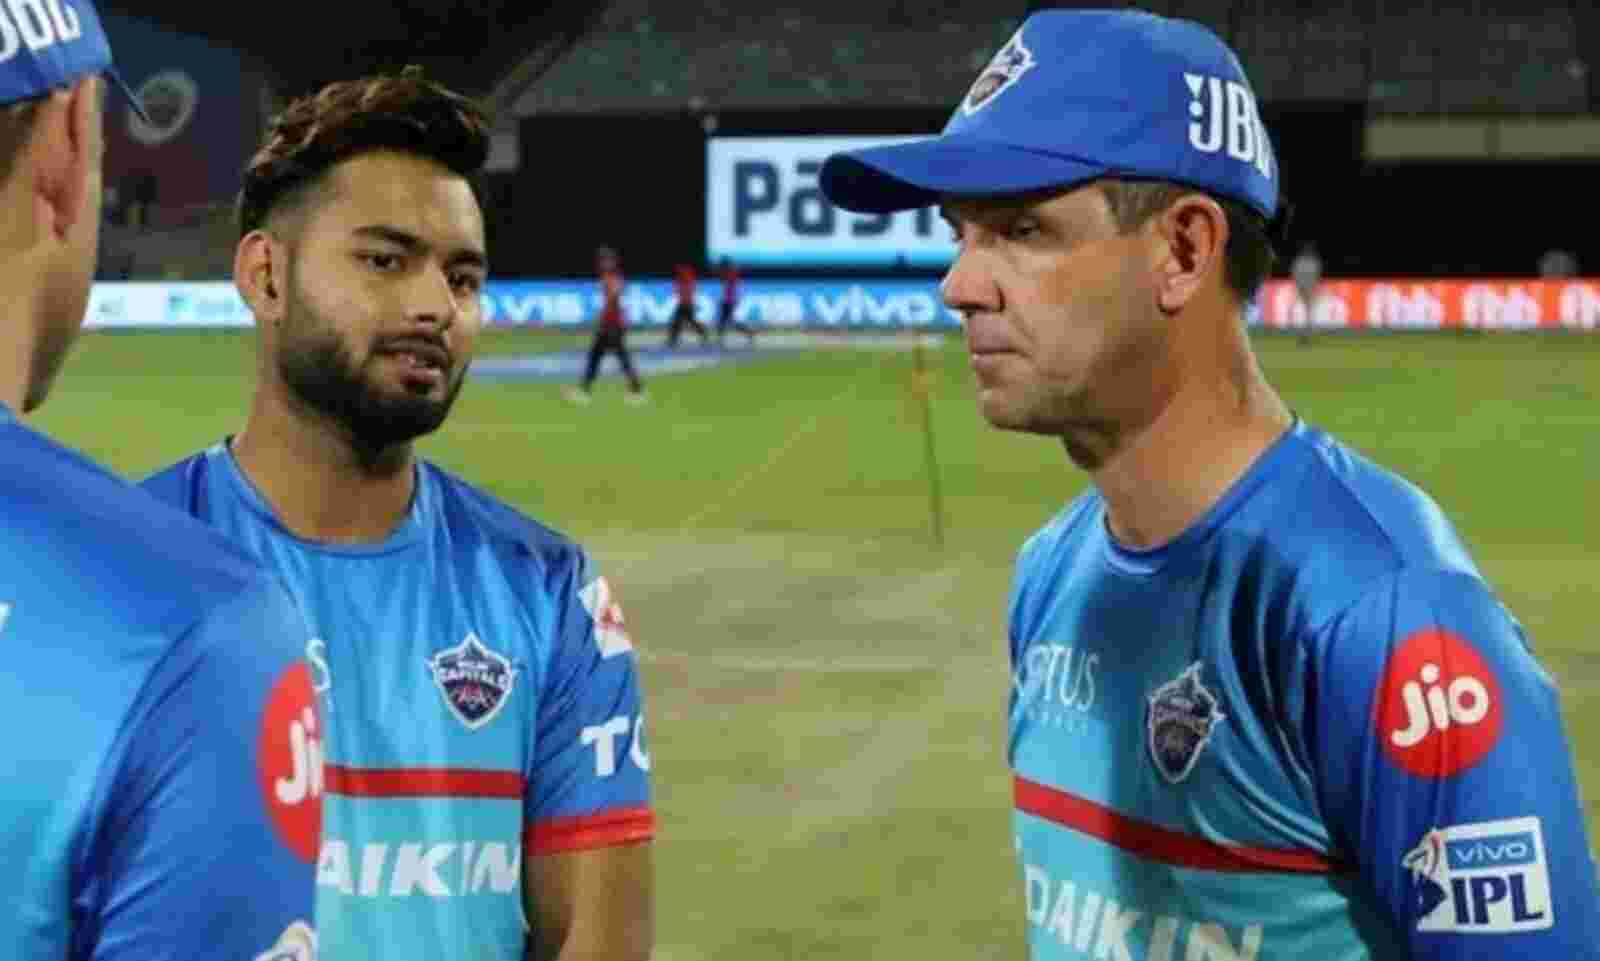 Ricky Ponting is looking forward to working with Rishabh Pant. [Source: The SportsRush]